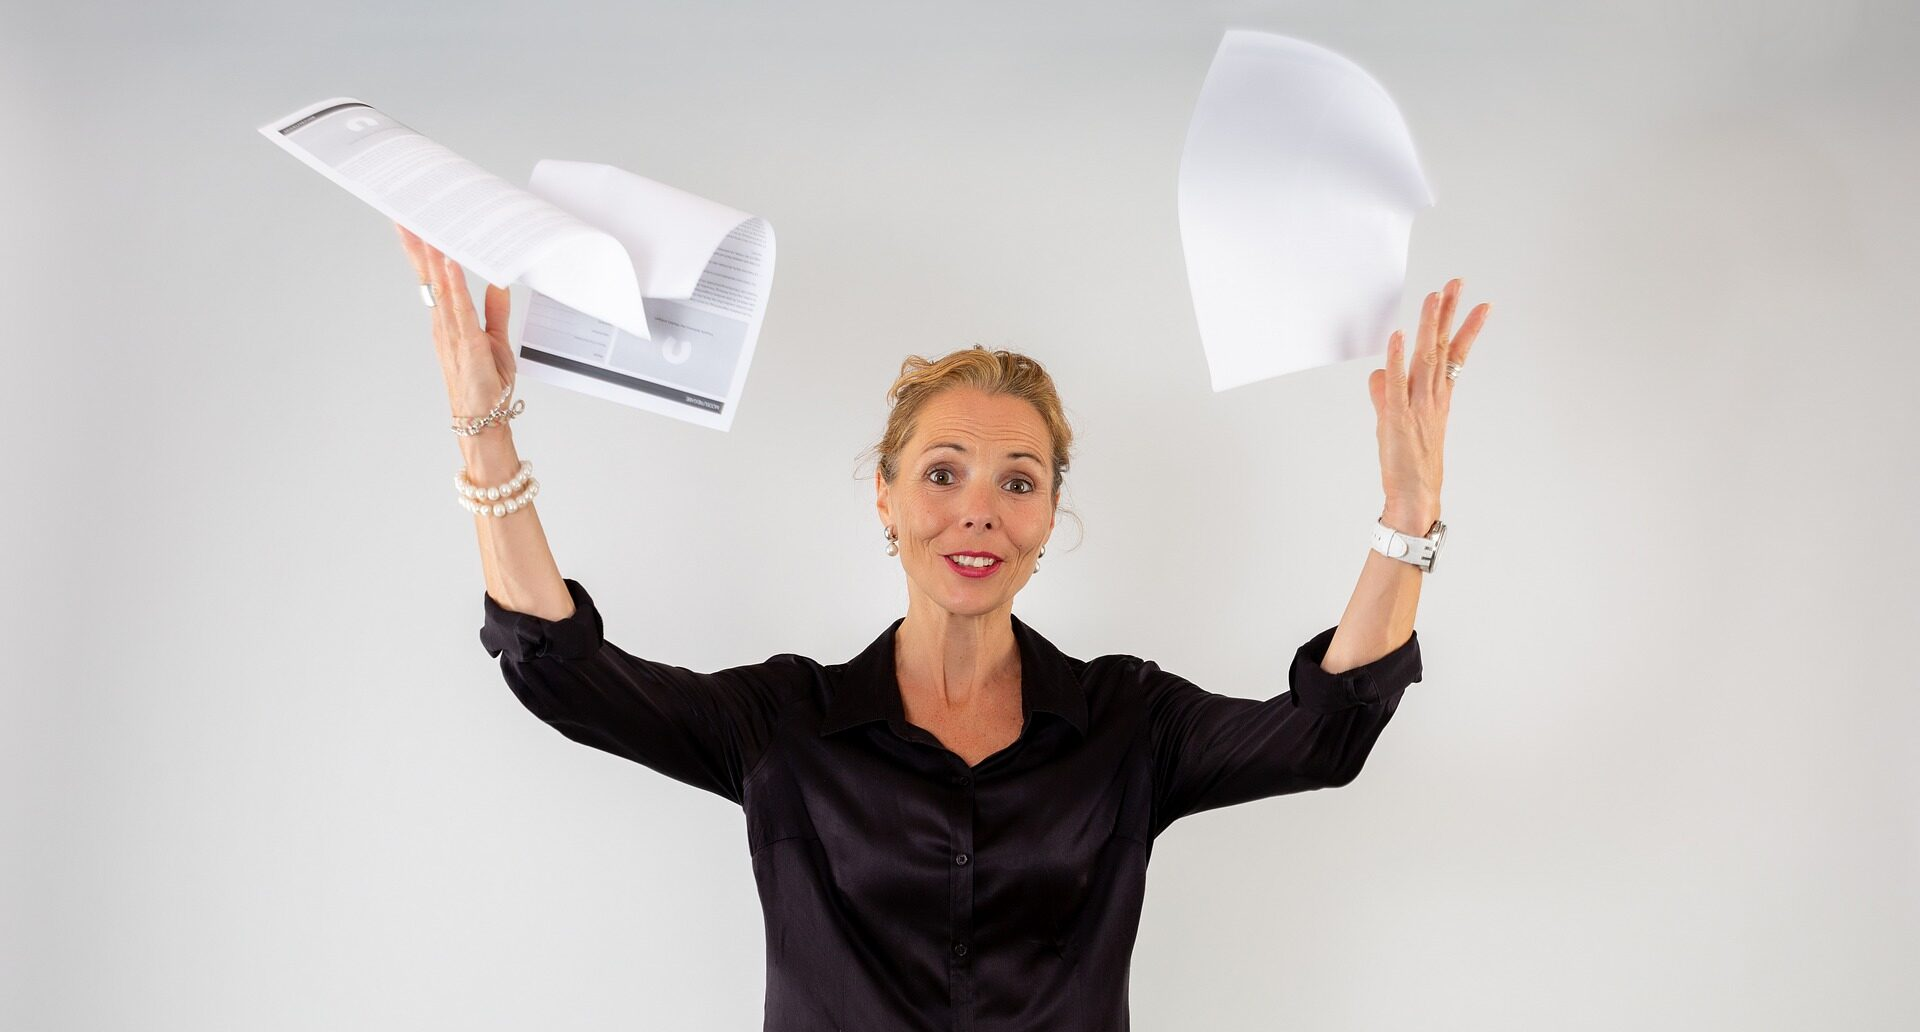 Woman In Black Throwing Papers In The Air Frustrated Needing Help On Pro Tax & Accounting For Bookkeeping